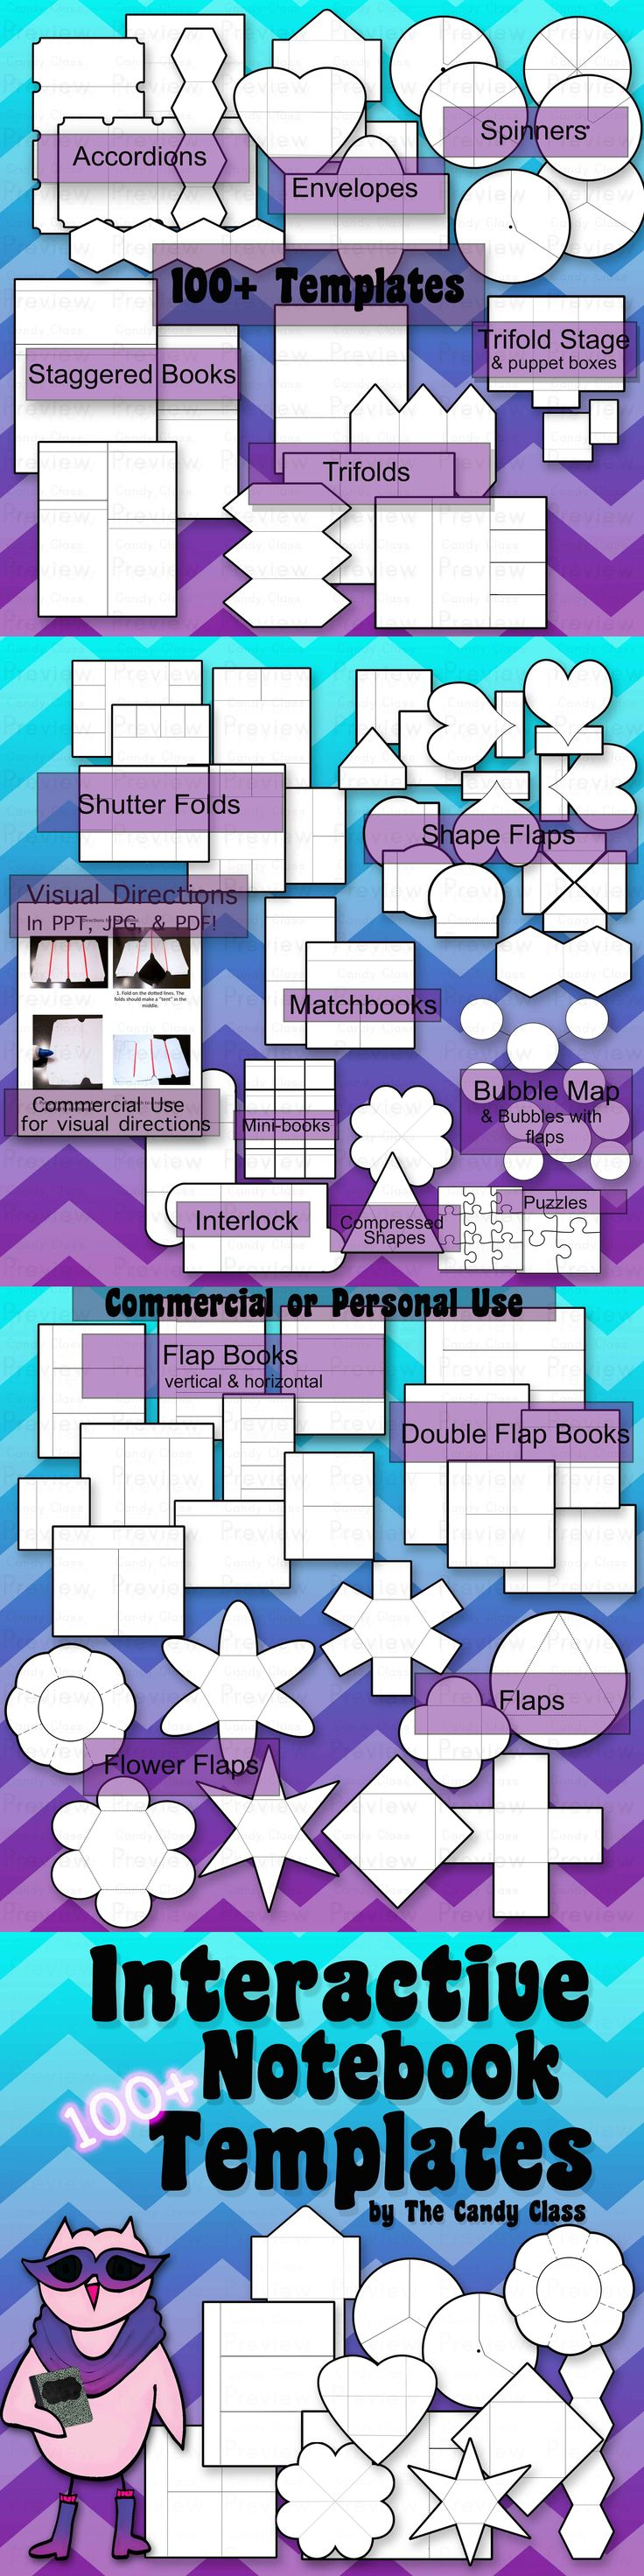 Interacting Notebook Templates with 1000+ blank templates for commercial and classroom use. Templates come in 300 dpi png images and editable PowerPoints. It includes photographed directions to assemble the templates. It also includes PowerPoint tutorials on how to add your own text and images to customize the template.